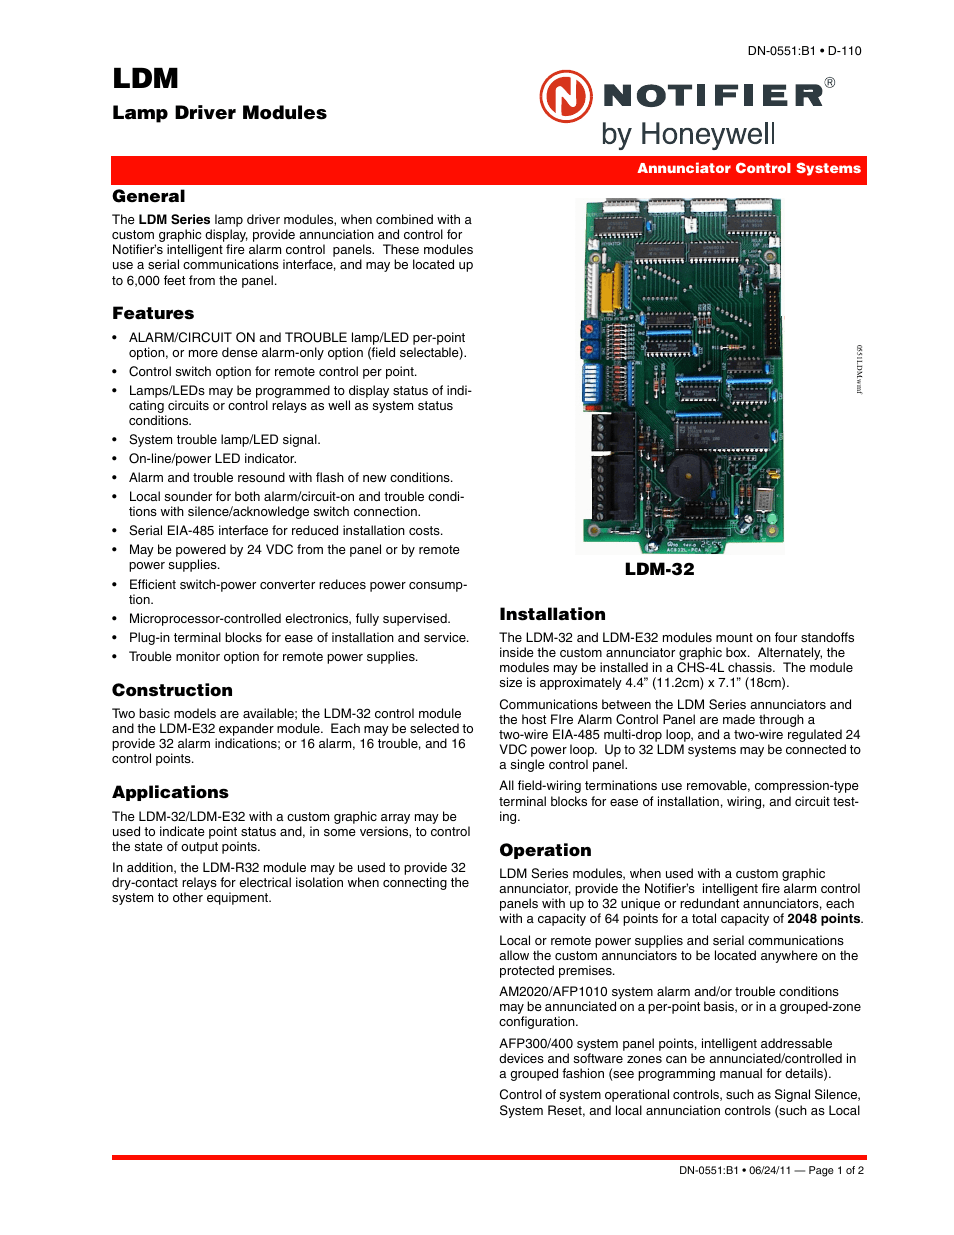 Notifier Slc Wiring Manual